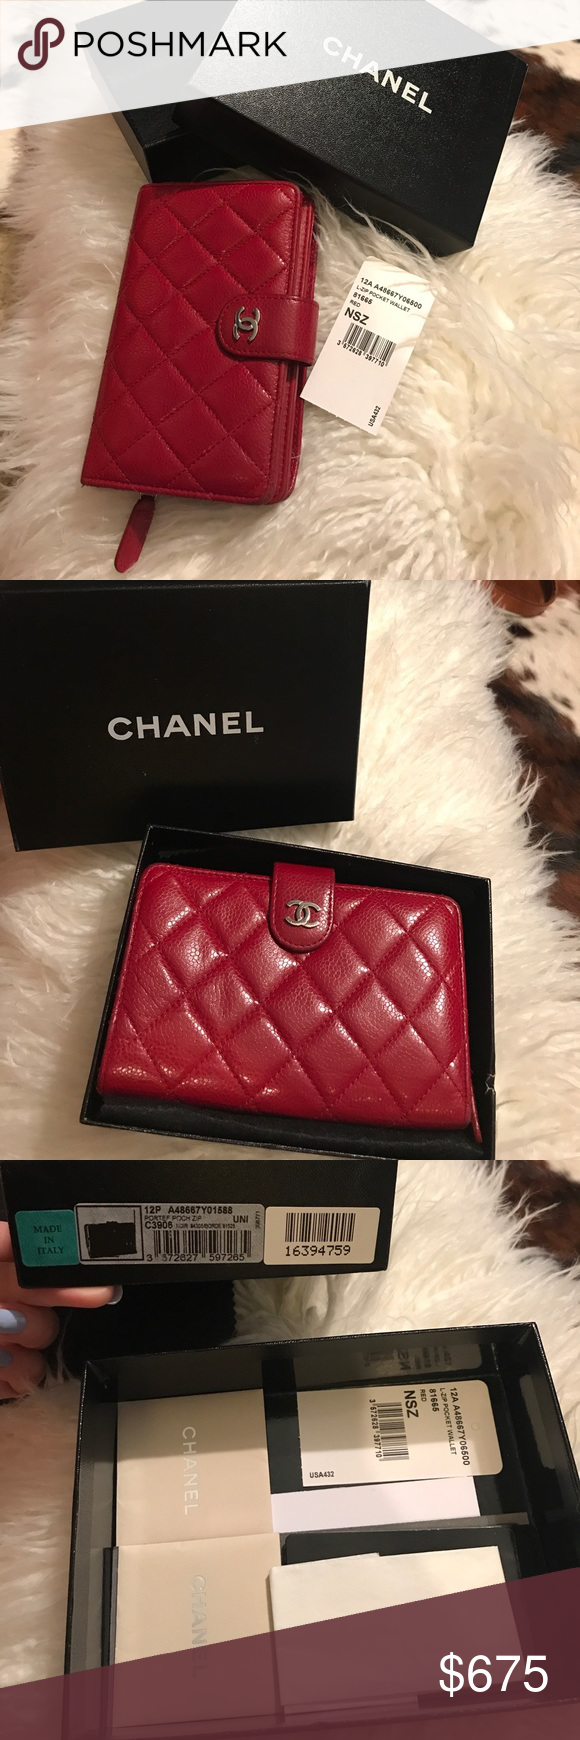 062ef2ad9338 Chanel Pocket Wallet in Red Chanel Classic L-Zip Pocket Wallet. Quilted  French Red